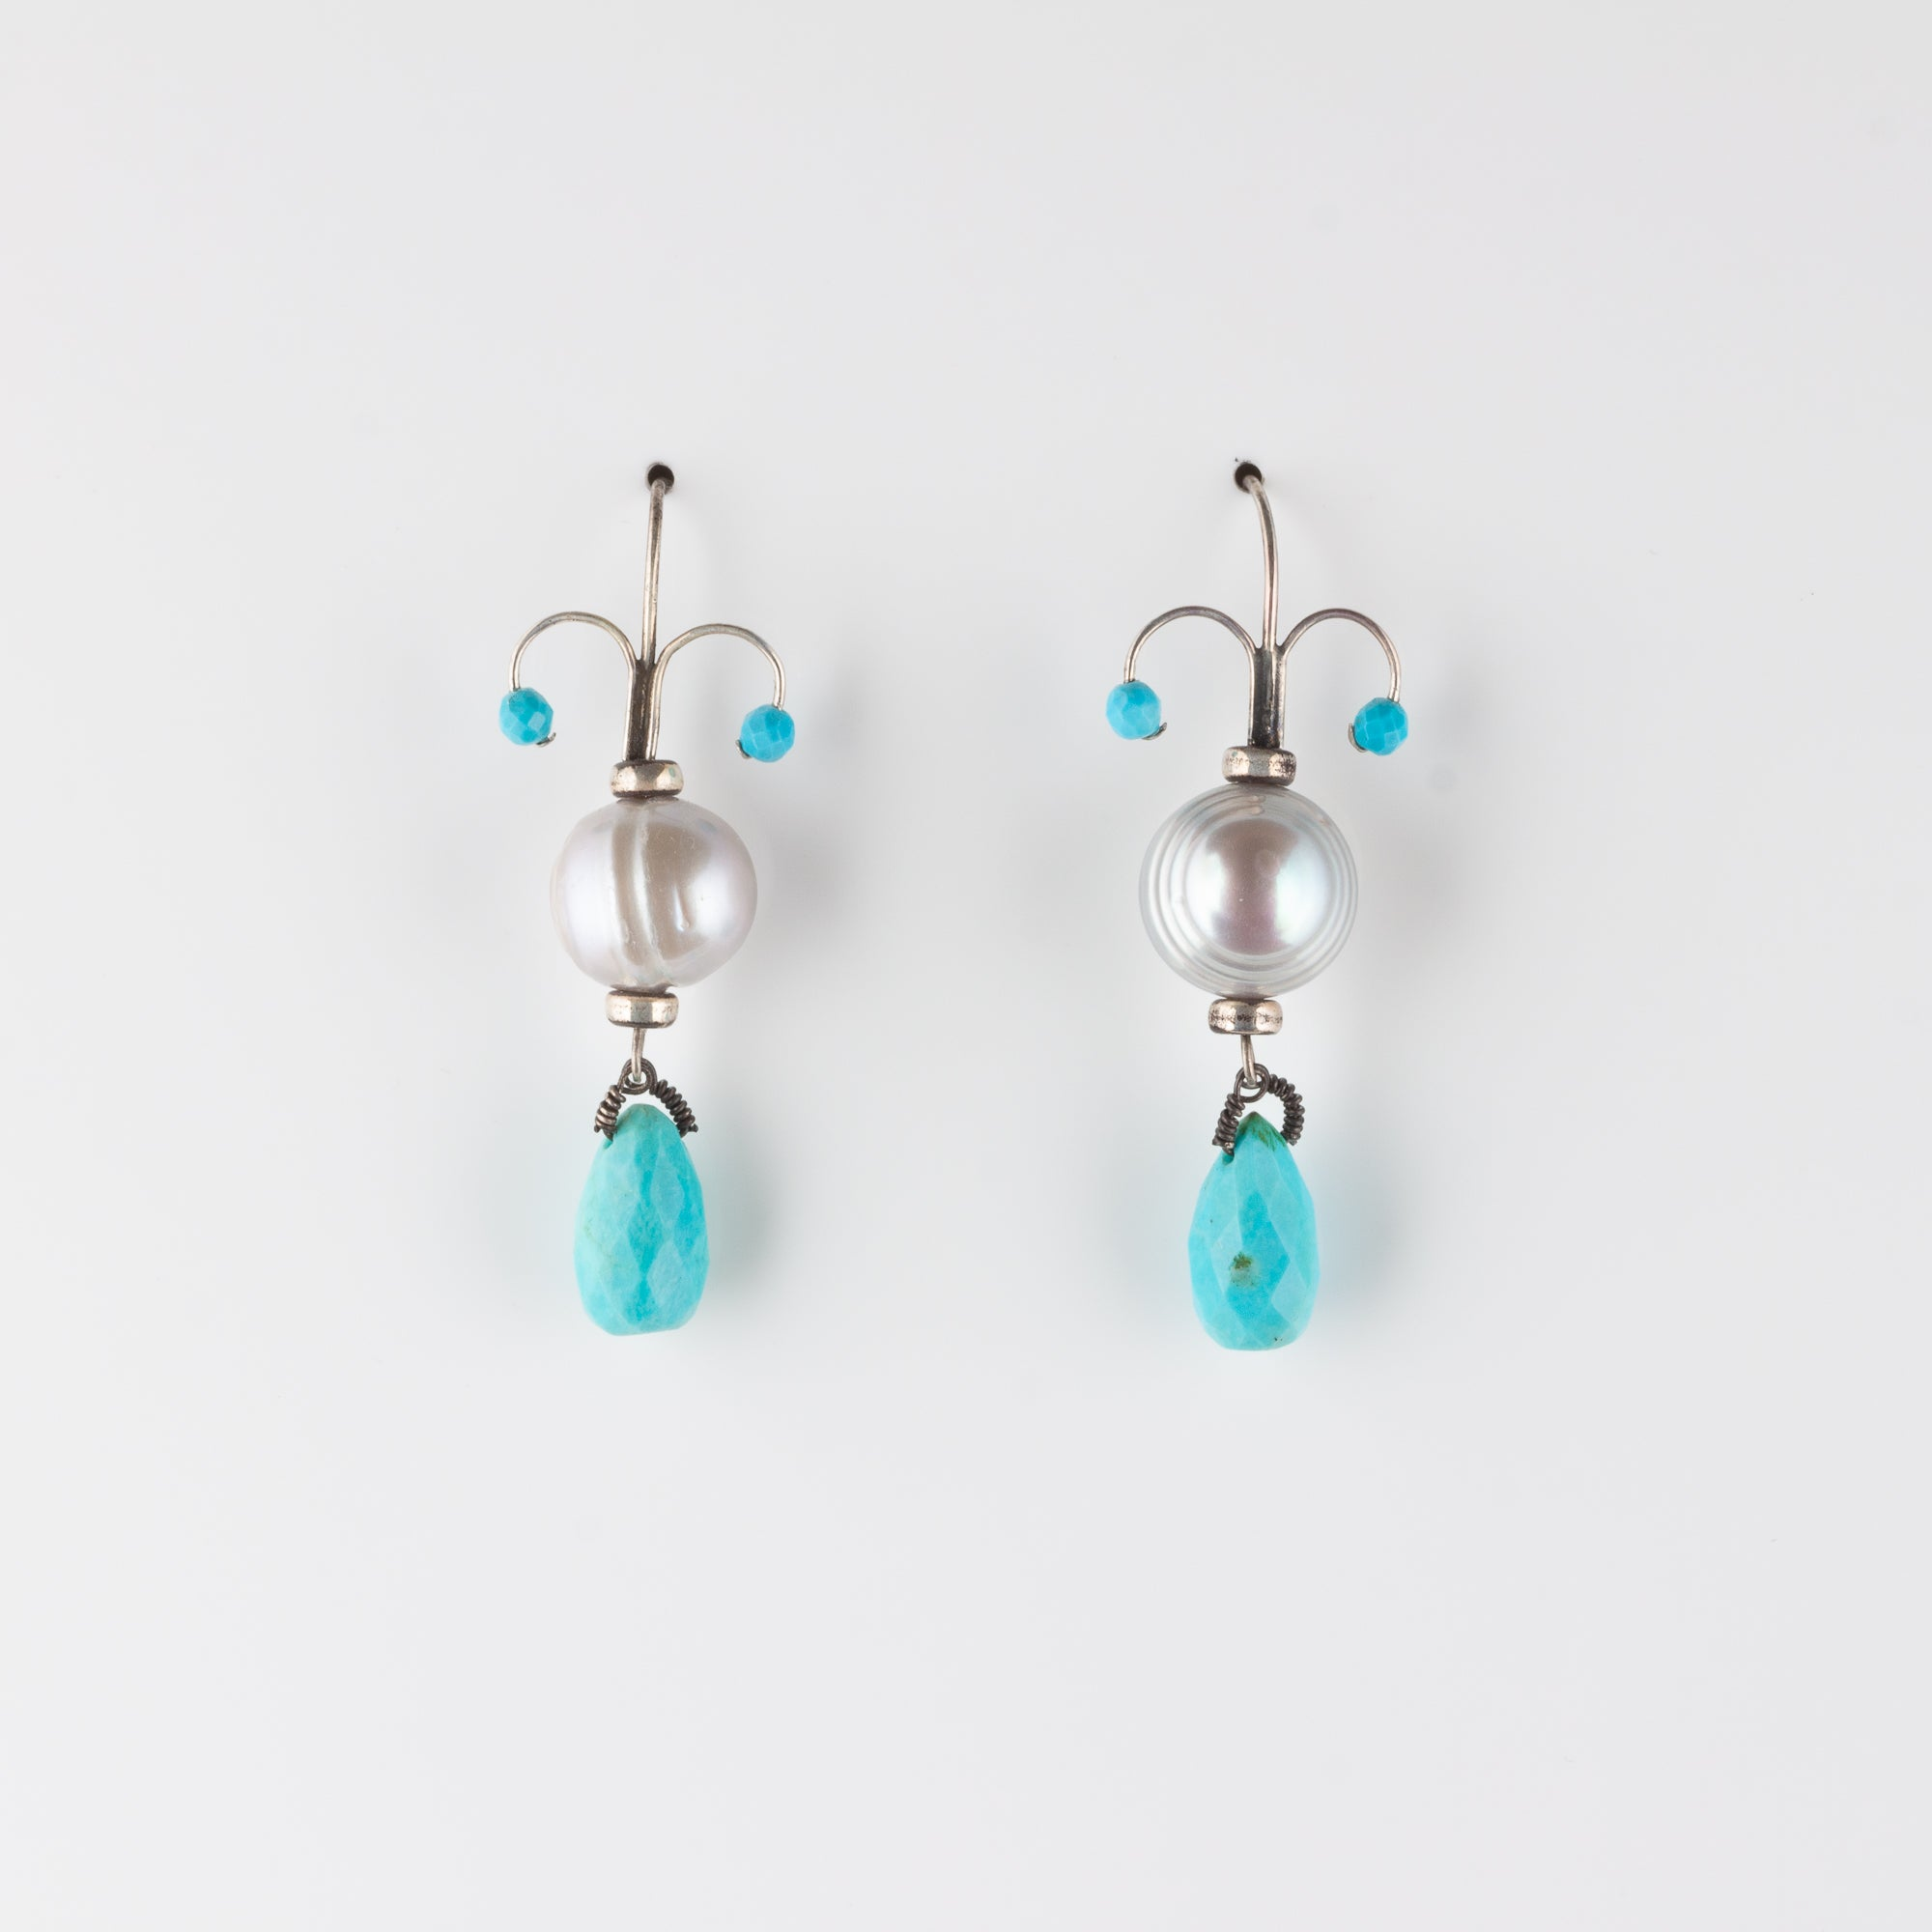 FIONA // GREY FRESHWATER PEARL & TURQUOISE EARRINGS